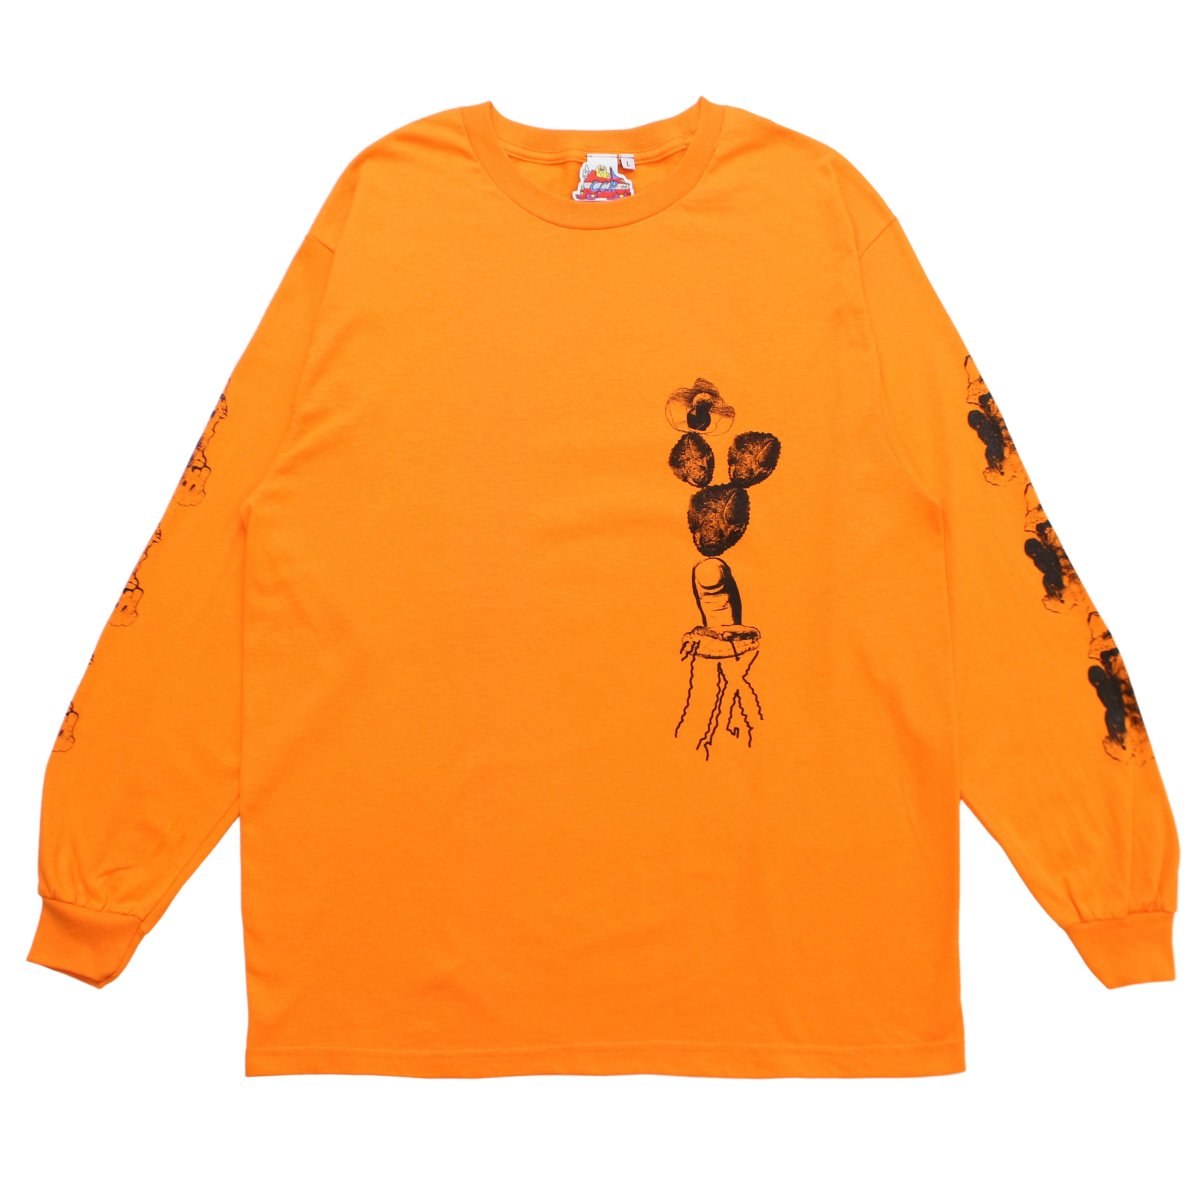 Ed Davis x BIEN Longsleeve 【ORANGE】